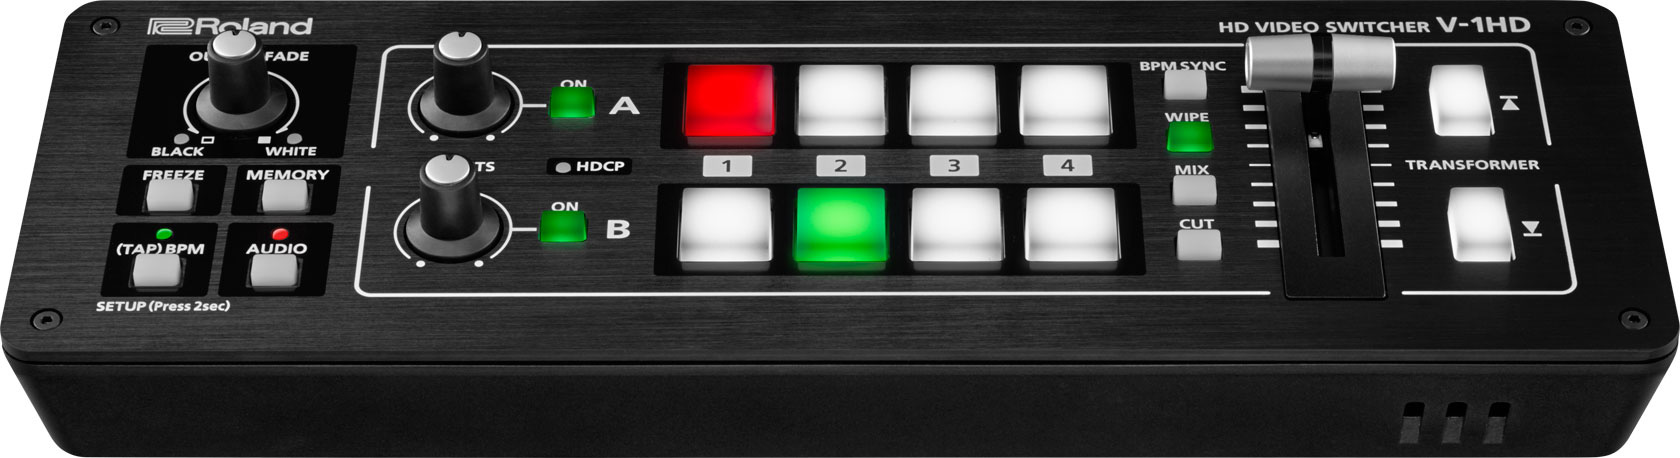 roland v 1hd portable compact live hd video mixer production switcher. Black Bedroom Furniture Sets. Home Design Ideas